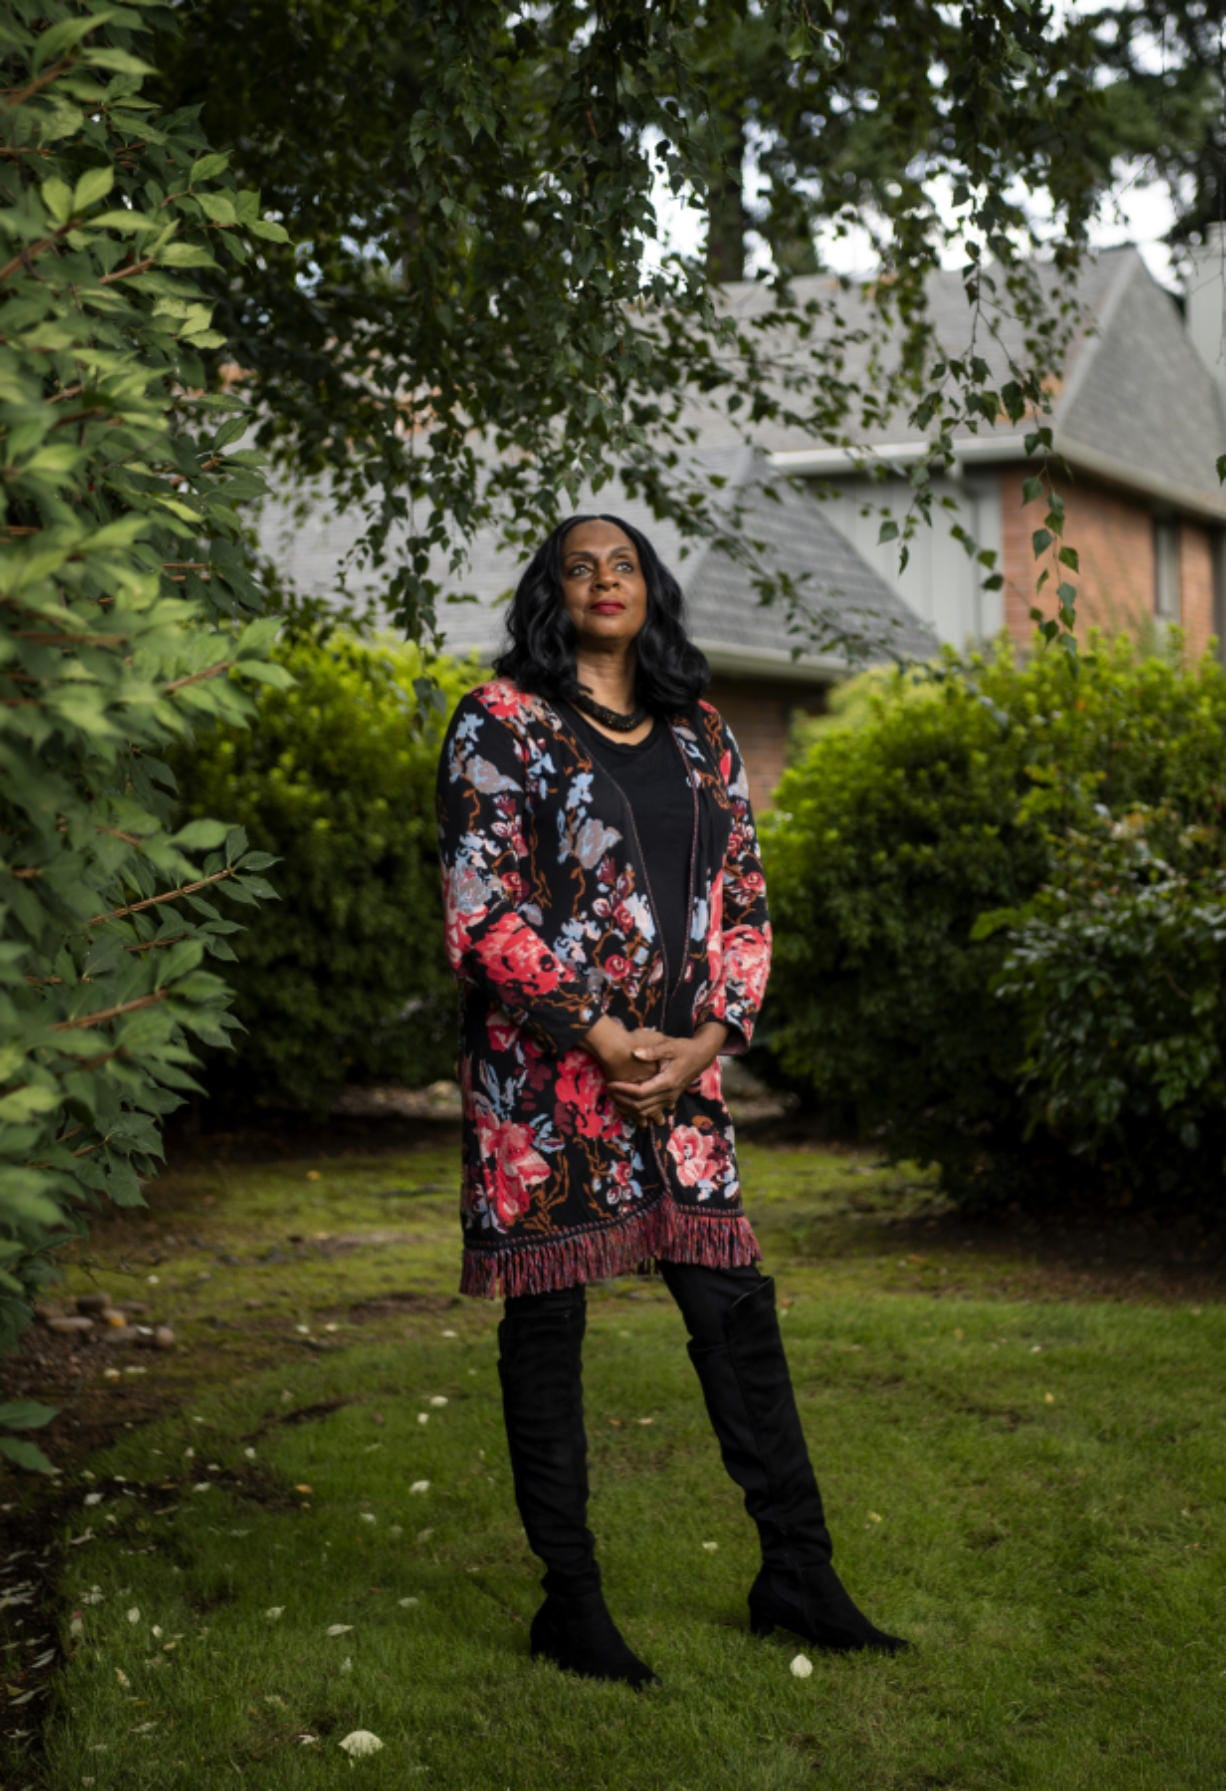 Benita Presley grew up in Northeast Portland. One of her grandmothers, Katie Brown-Williams, was a missionary and grassroots activist who taught Presley about Black history.